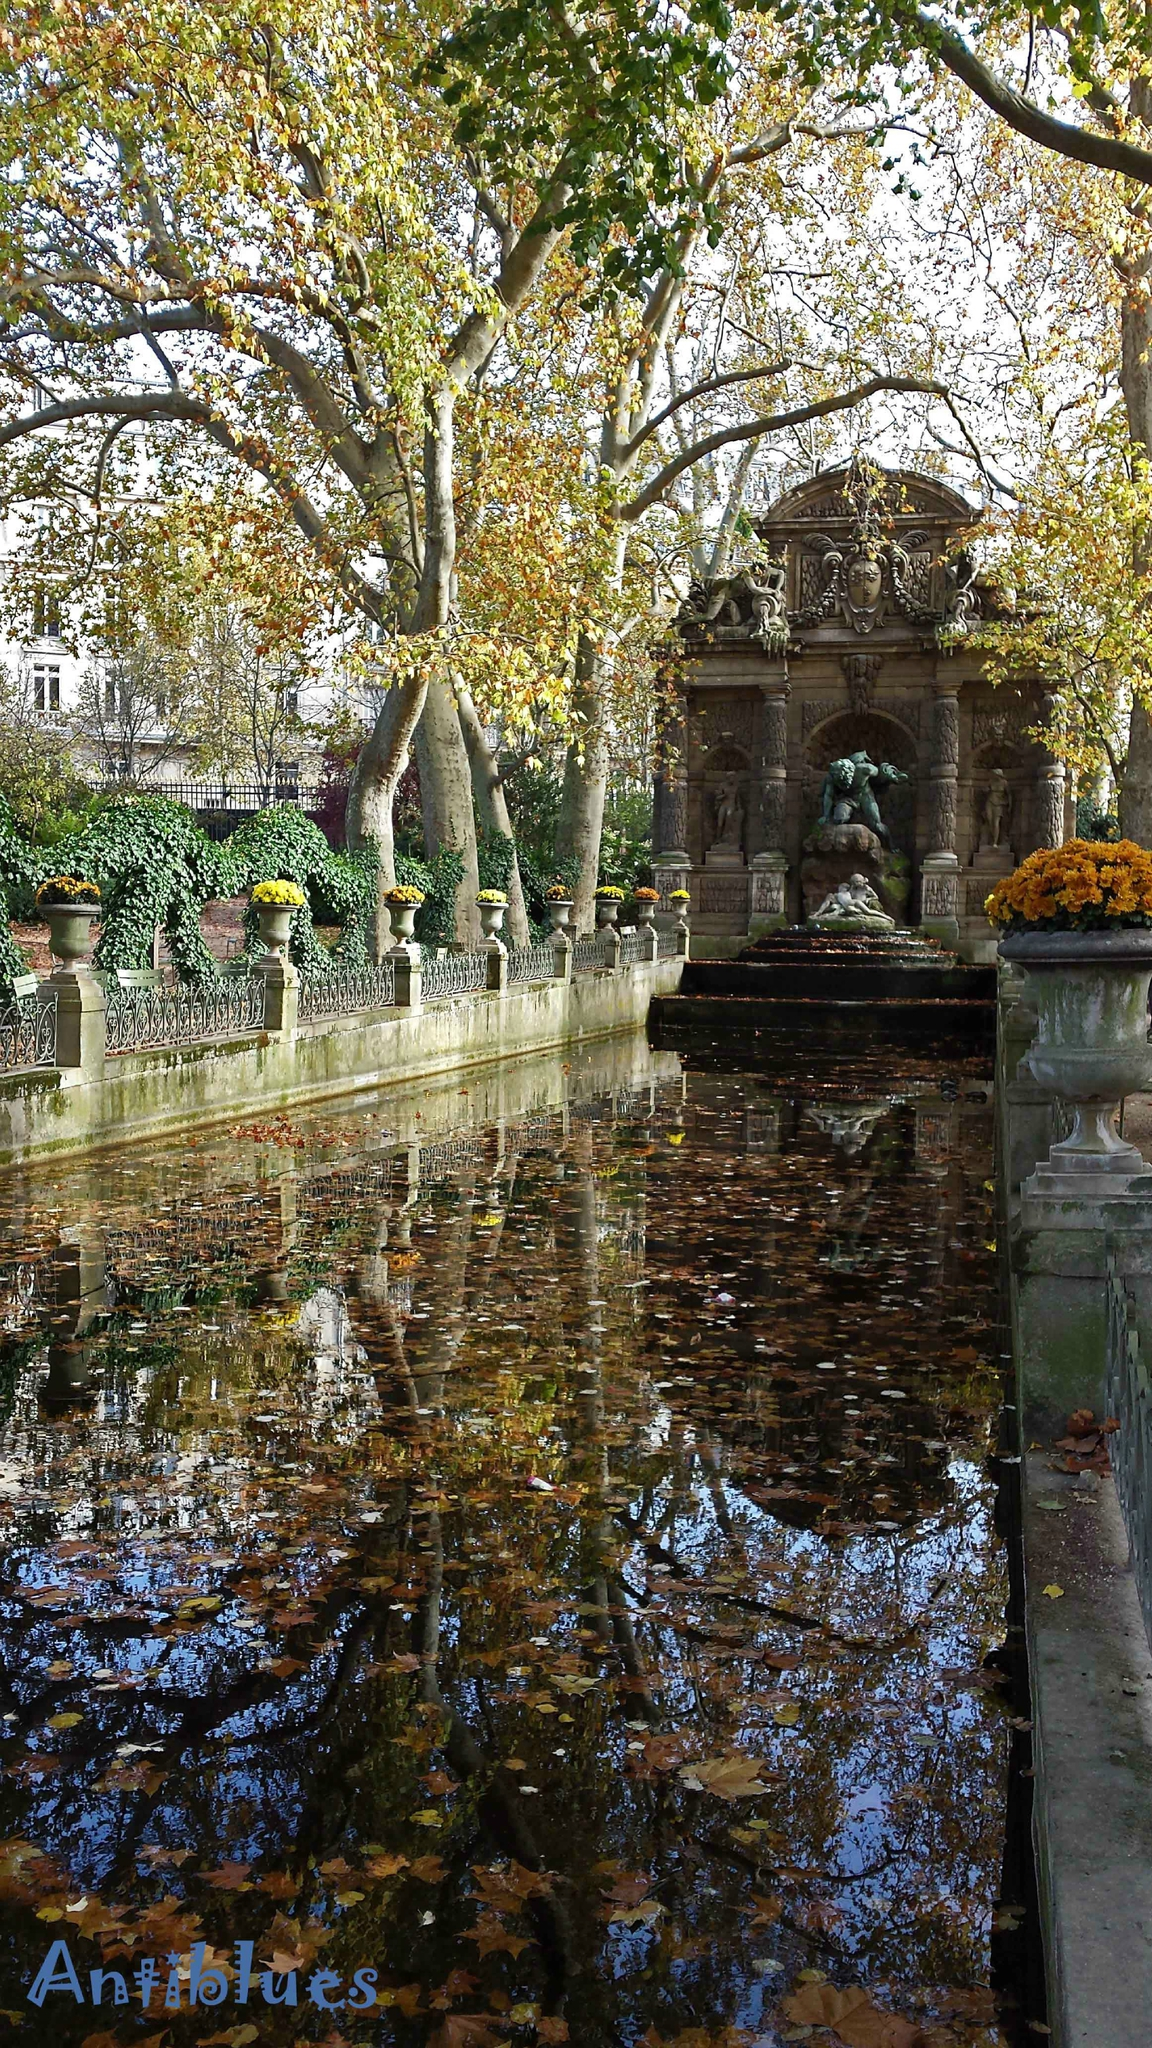 Fontaine - Copie